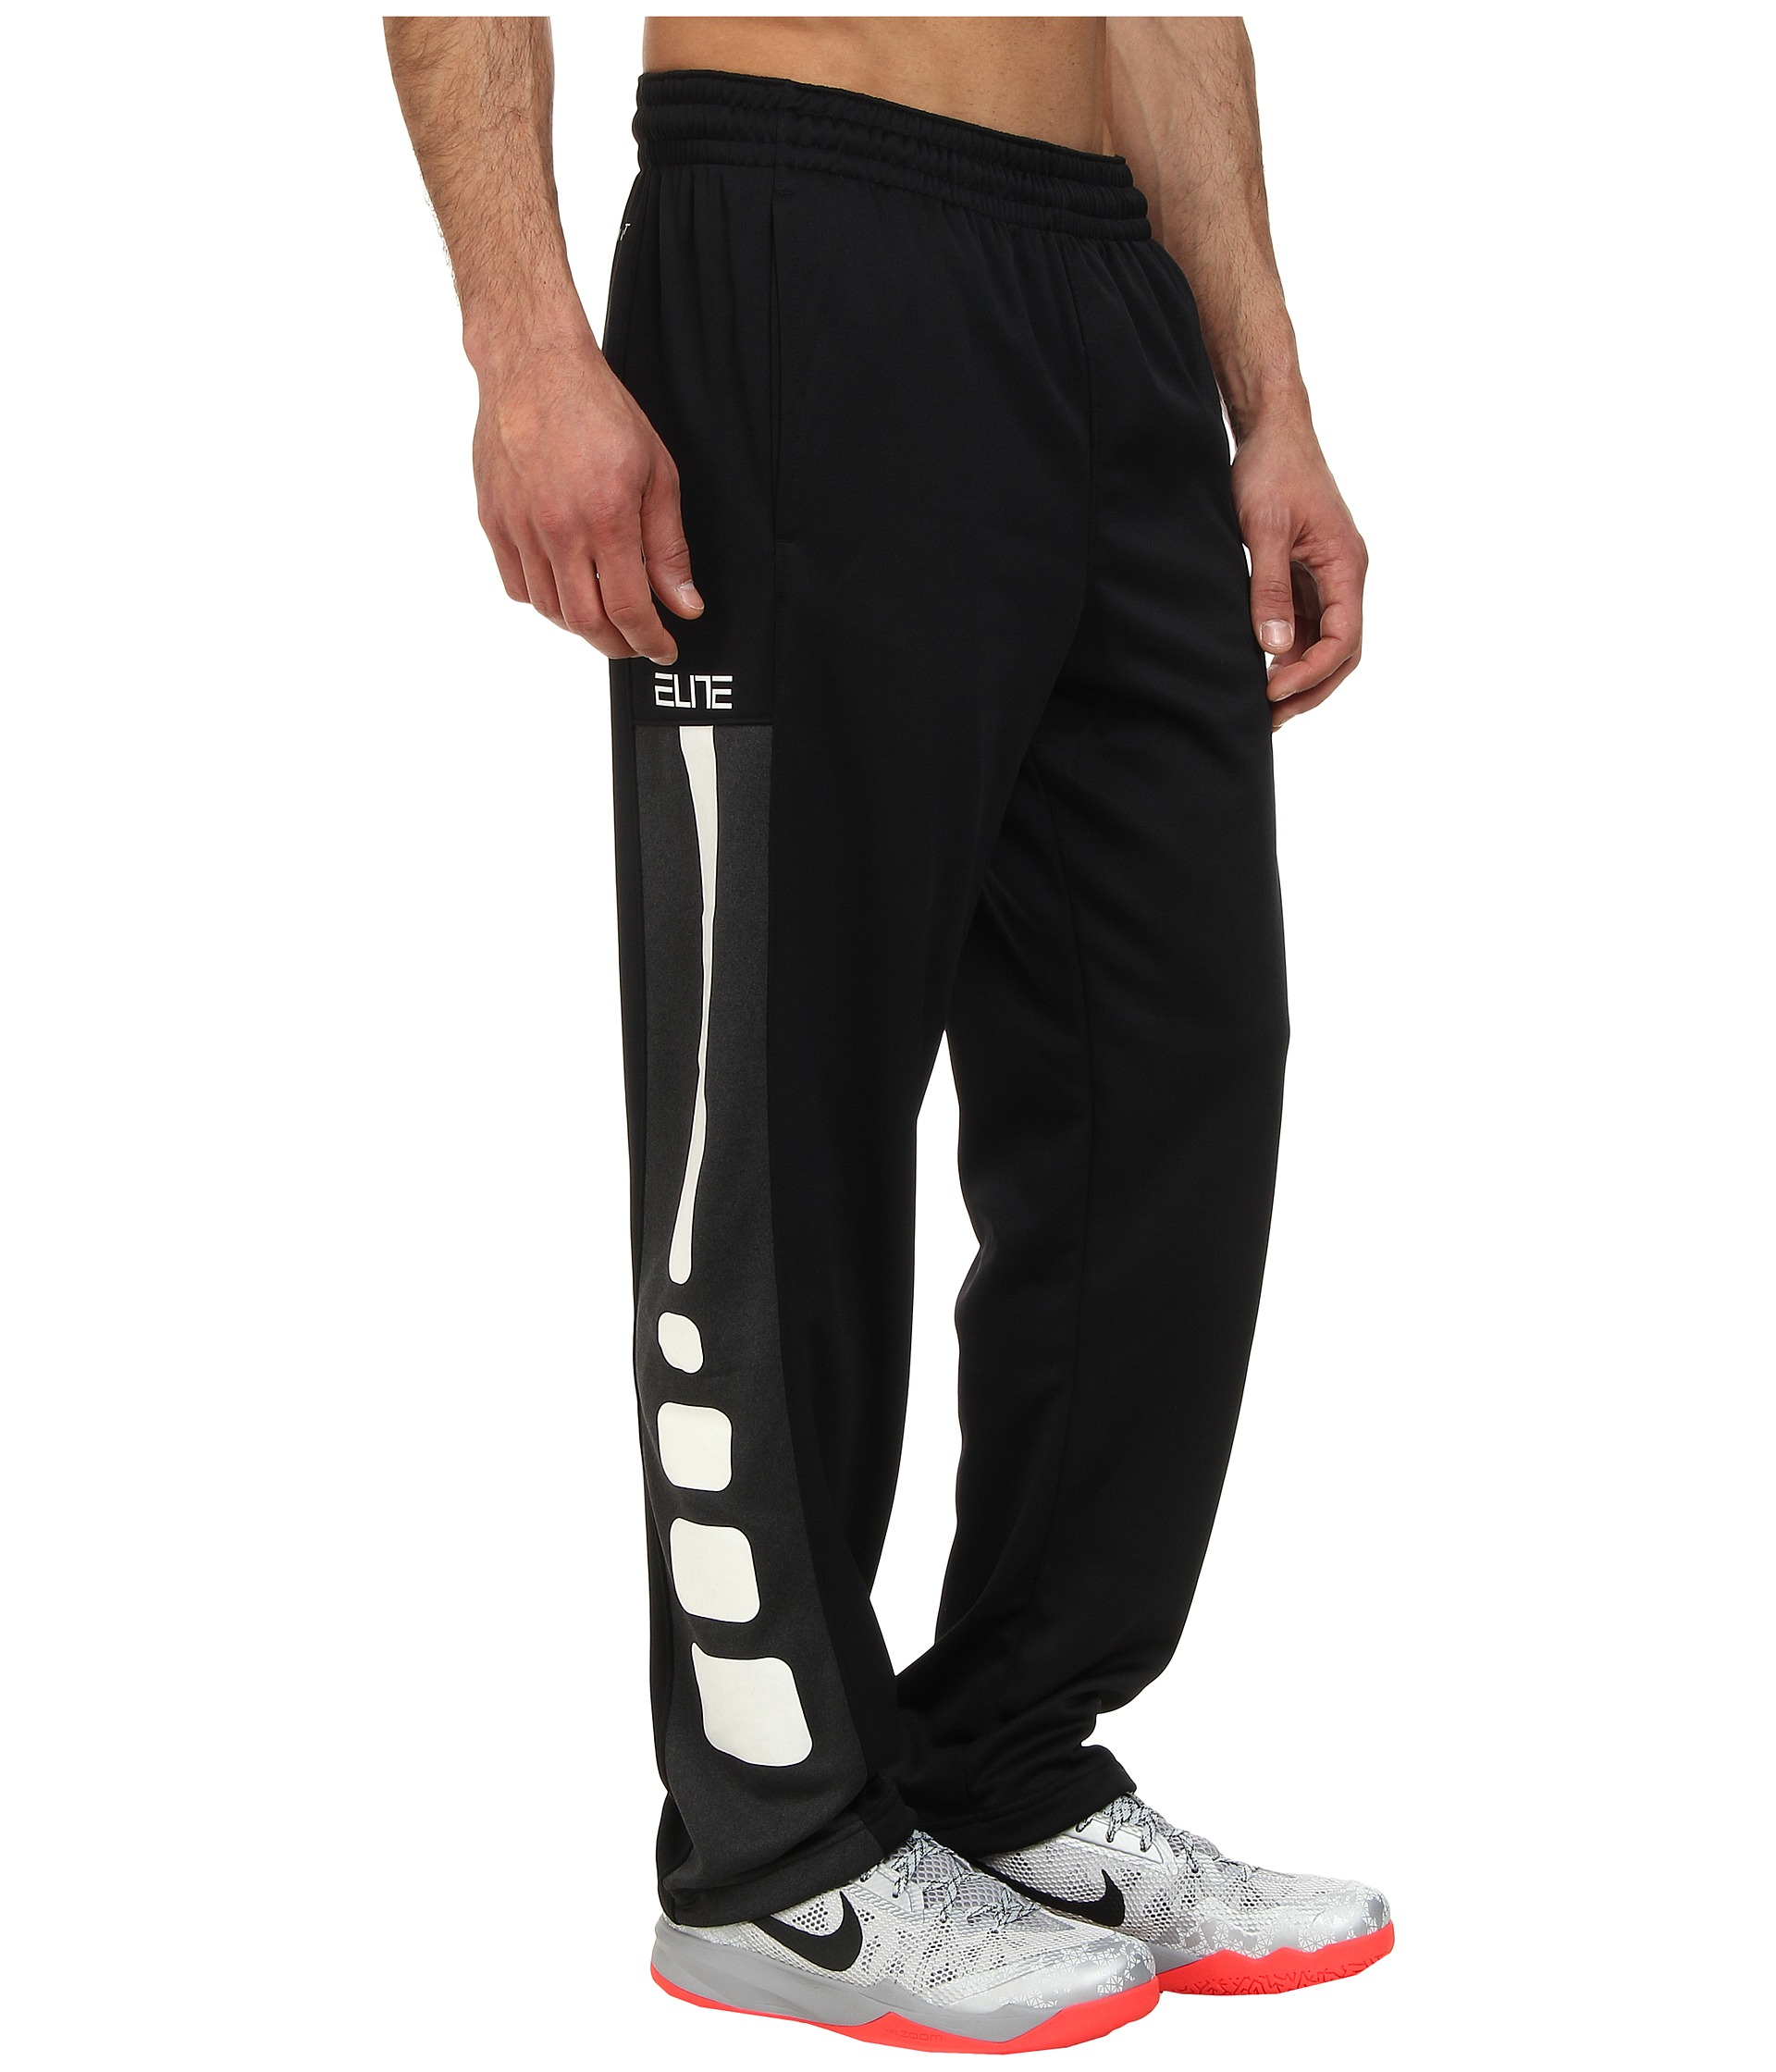 fe31024e5397 Lyst - Nike Elite Stripe Performance Fleece Pant in Black for Men